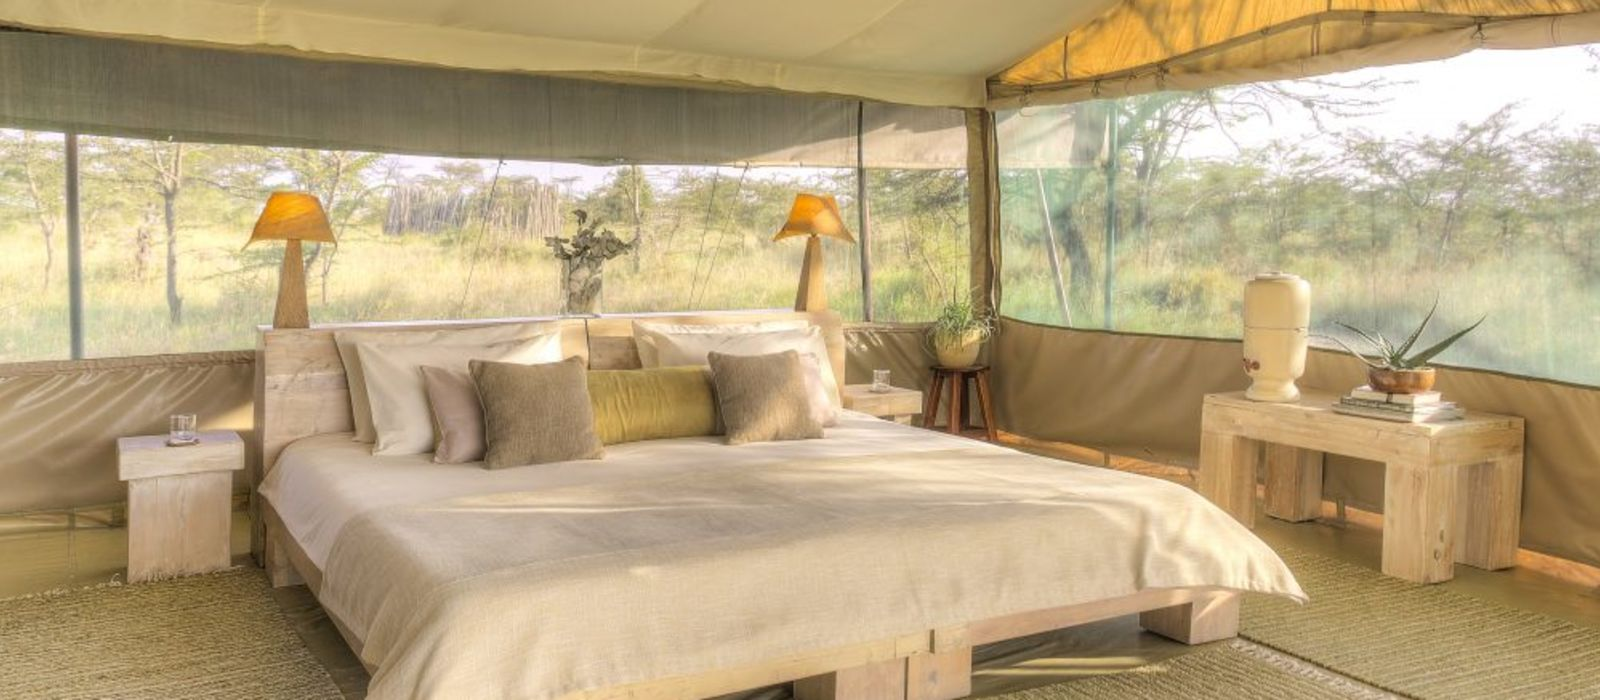 Hotel Kicheche Bush Camp Kenia